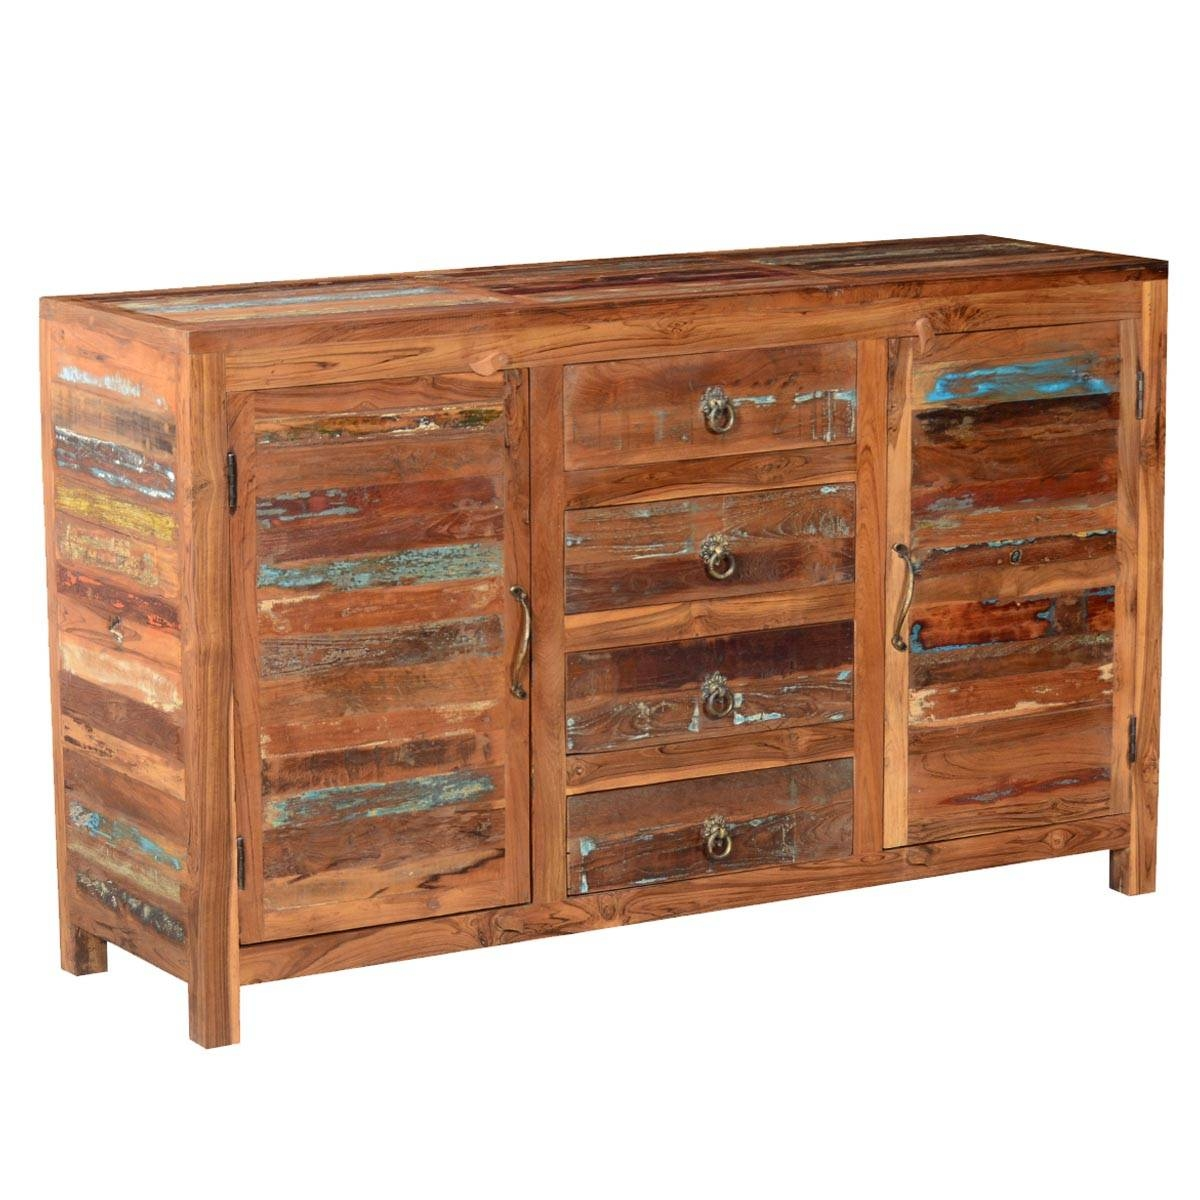 Fe Distressed Rustic Reclaimed Wood Sideboard Buffet Cabinet Intended For Santa Fe Sideboards (#2 of 15)